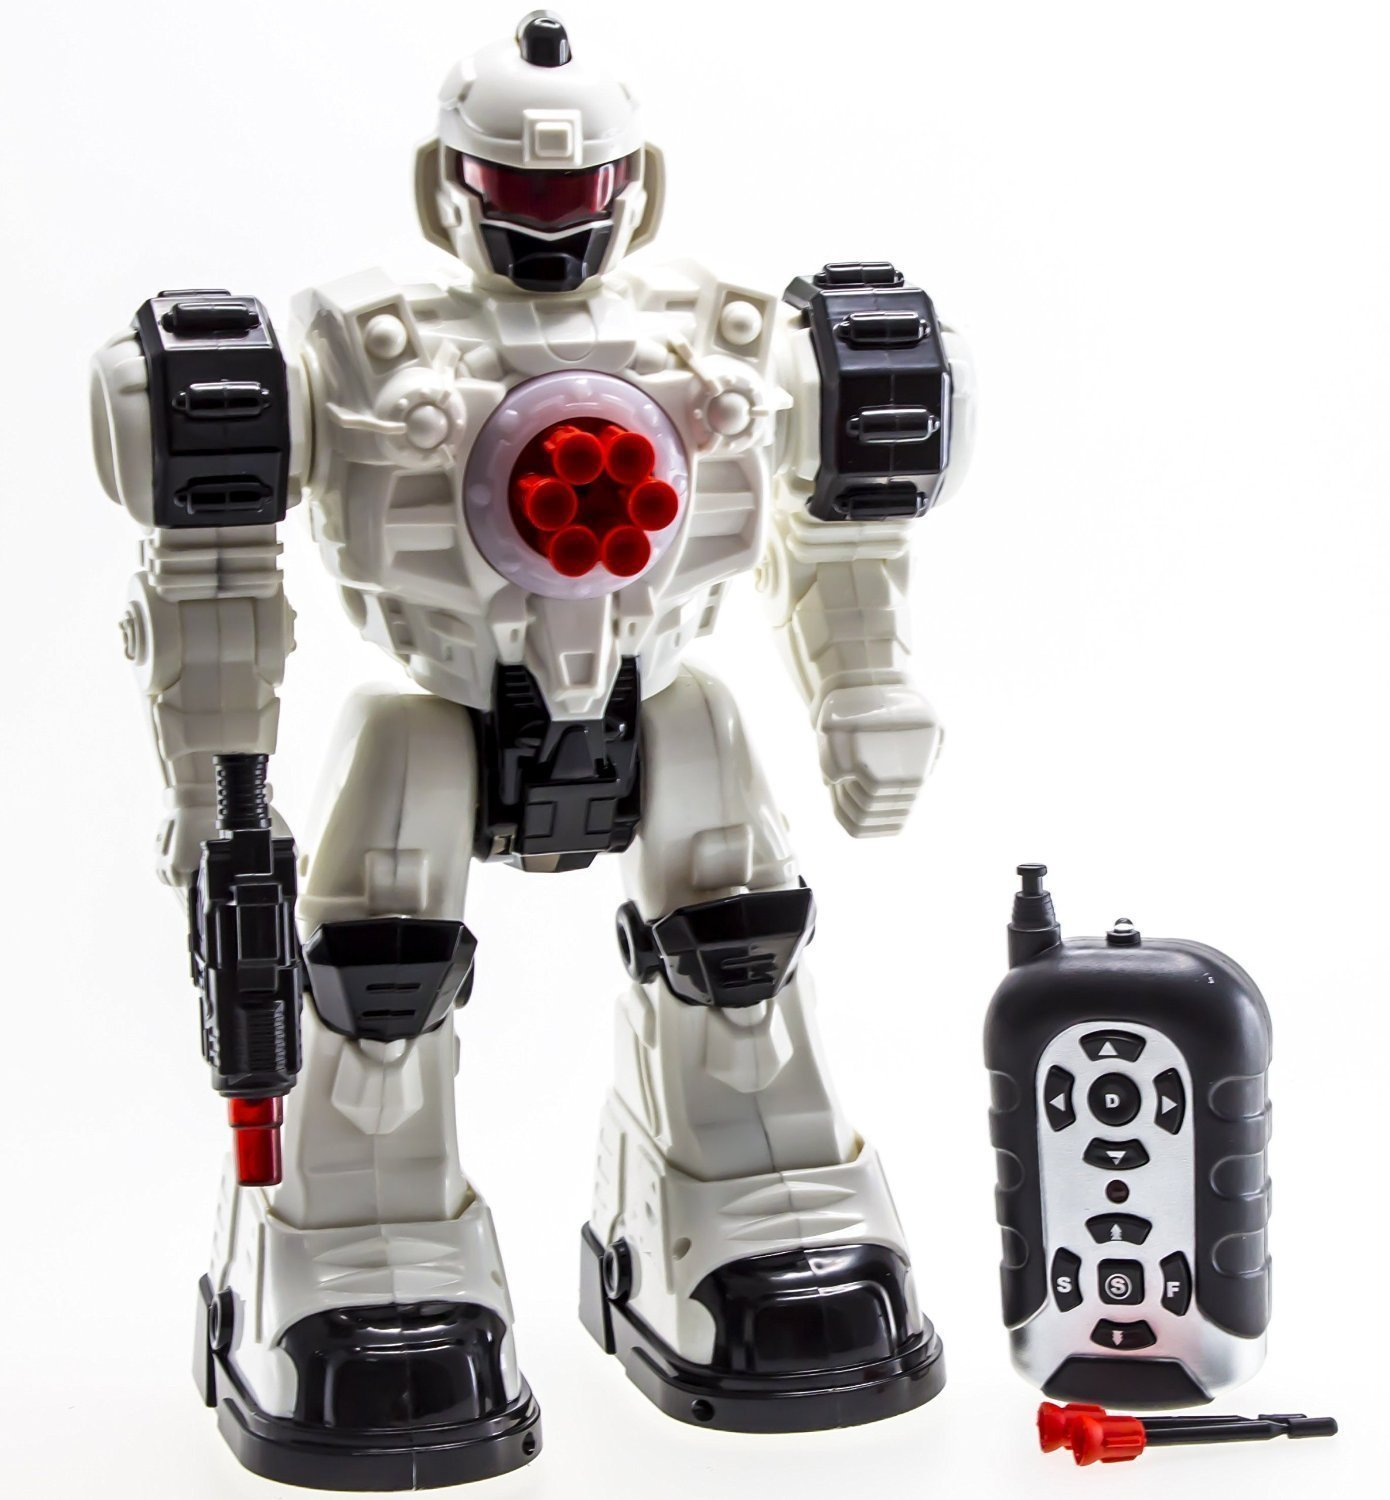 Rc Robot Police Unit Toy With Flashing Lights And Sounds 10